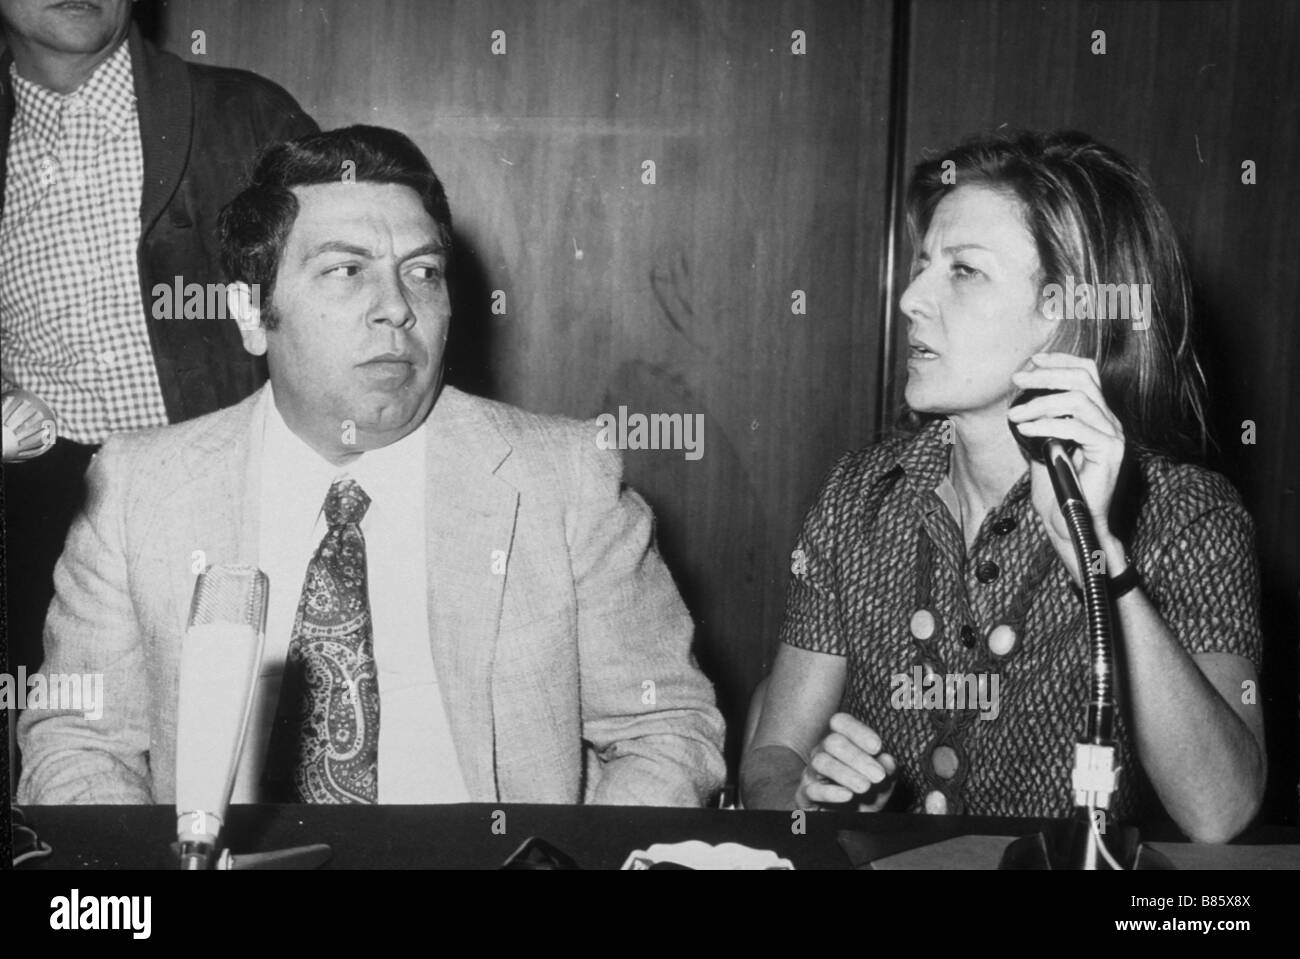 Elio Petri Elio Petri Elio Petri Stock Photo - Alamy